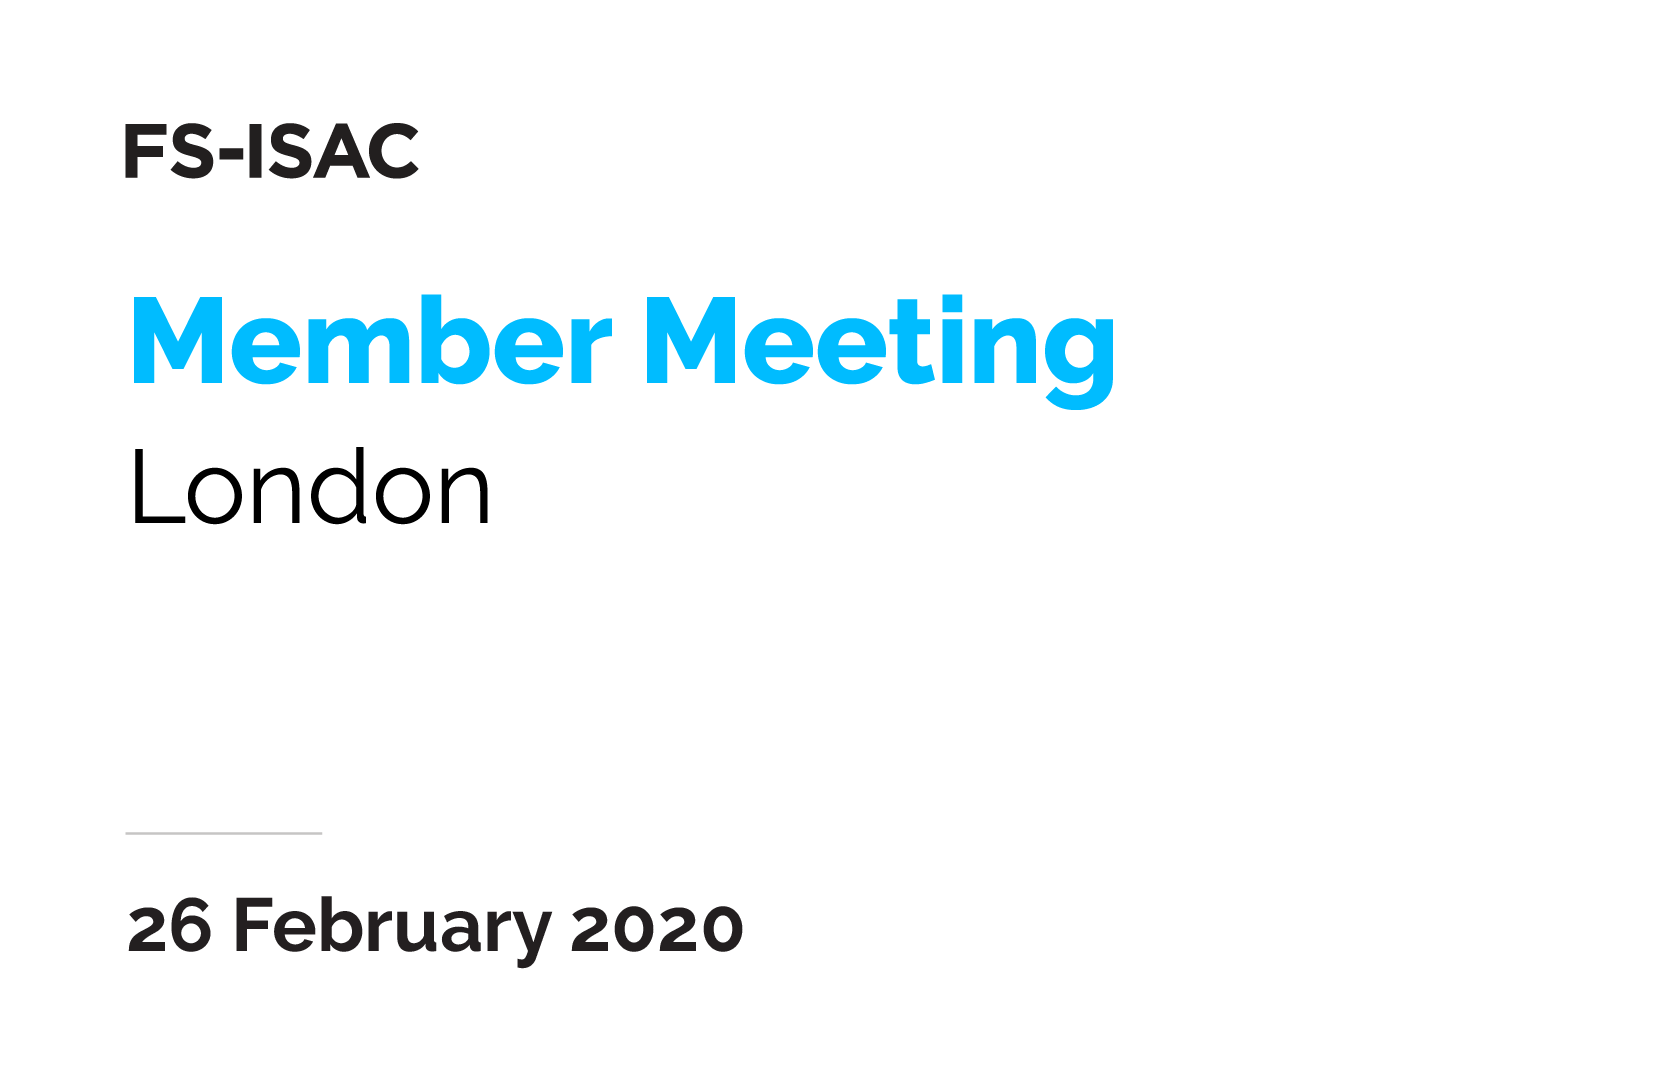 London Member Meeting